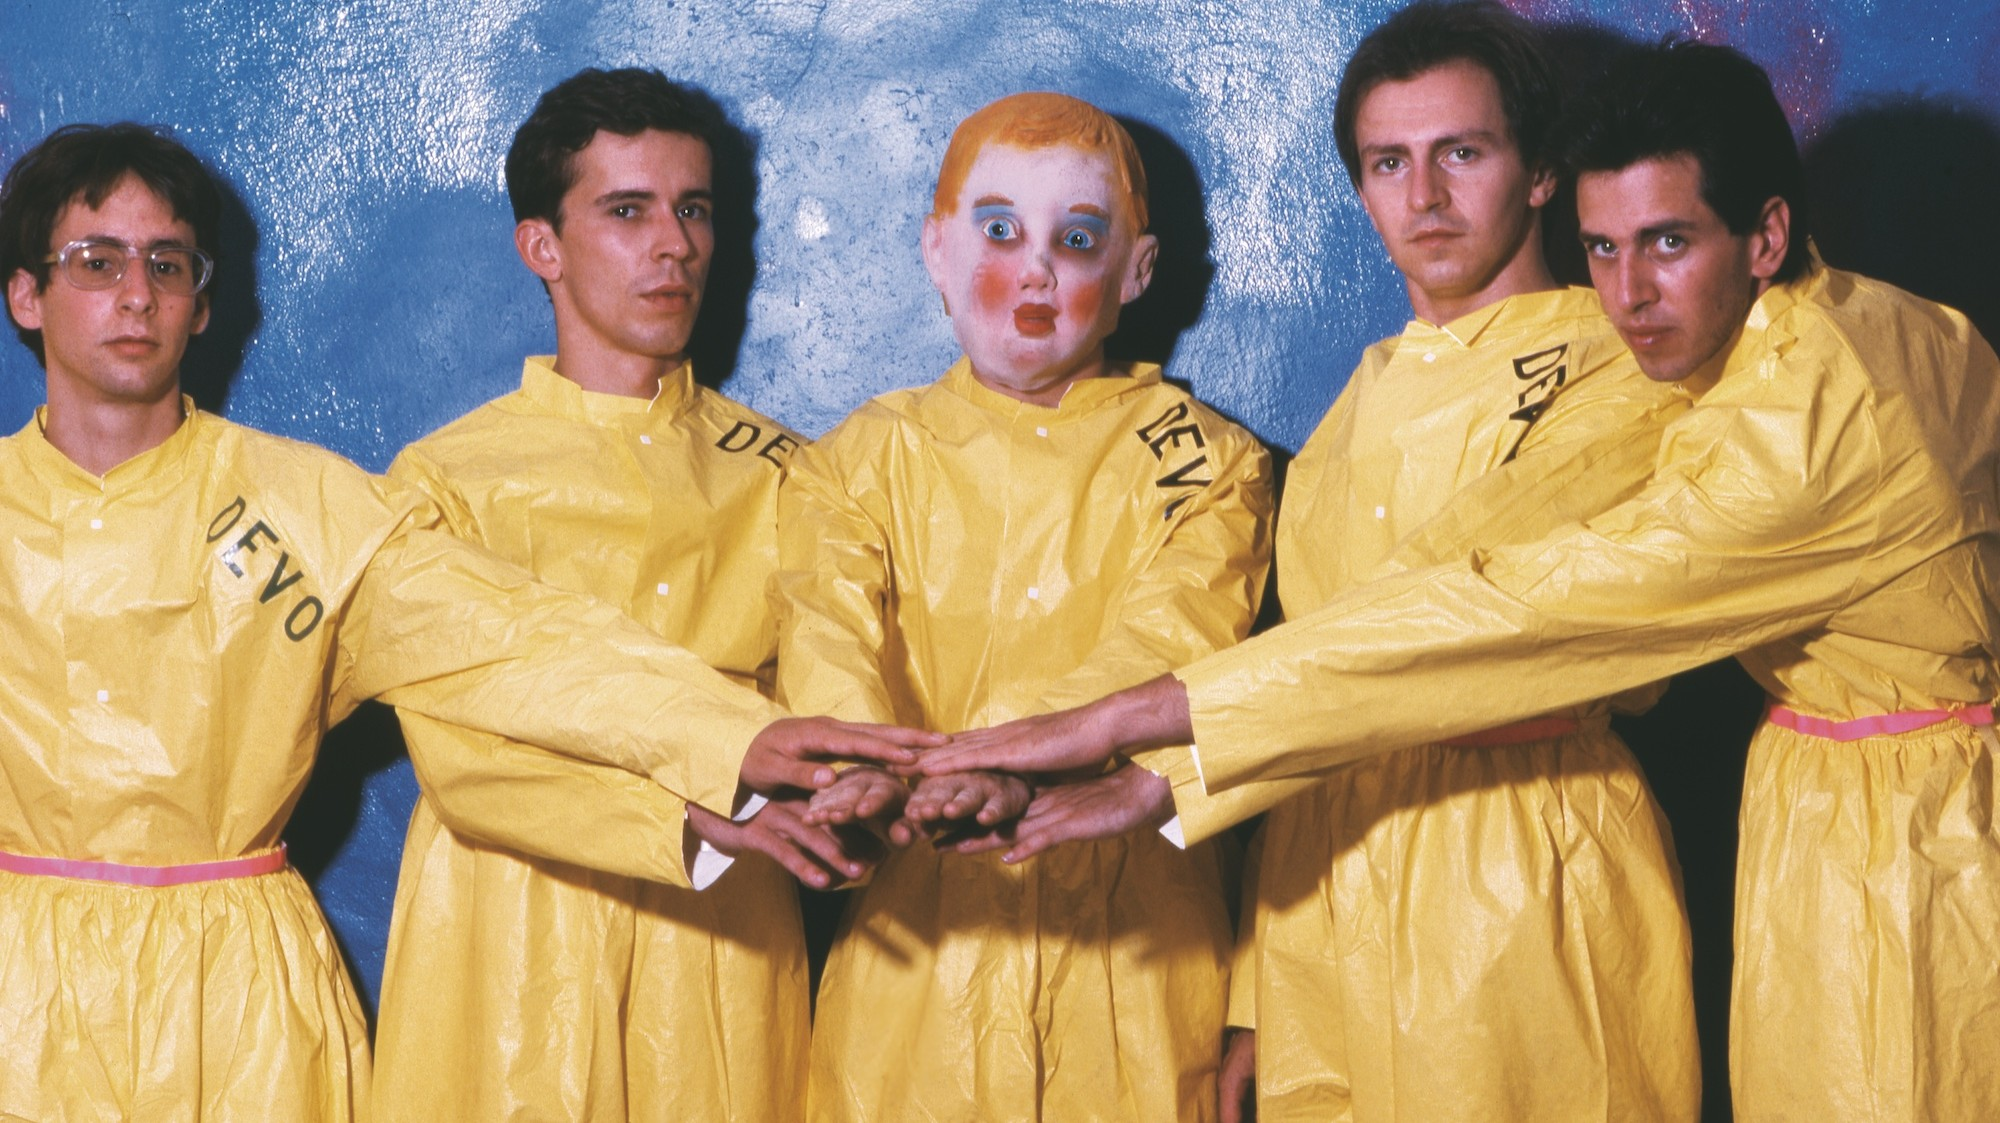 The Truth About Devo, America's Most Misunderstood Band - VICE